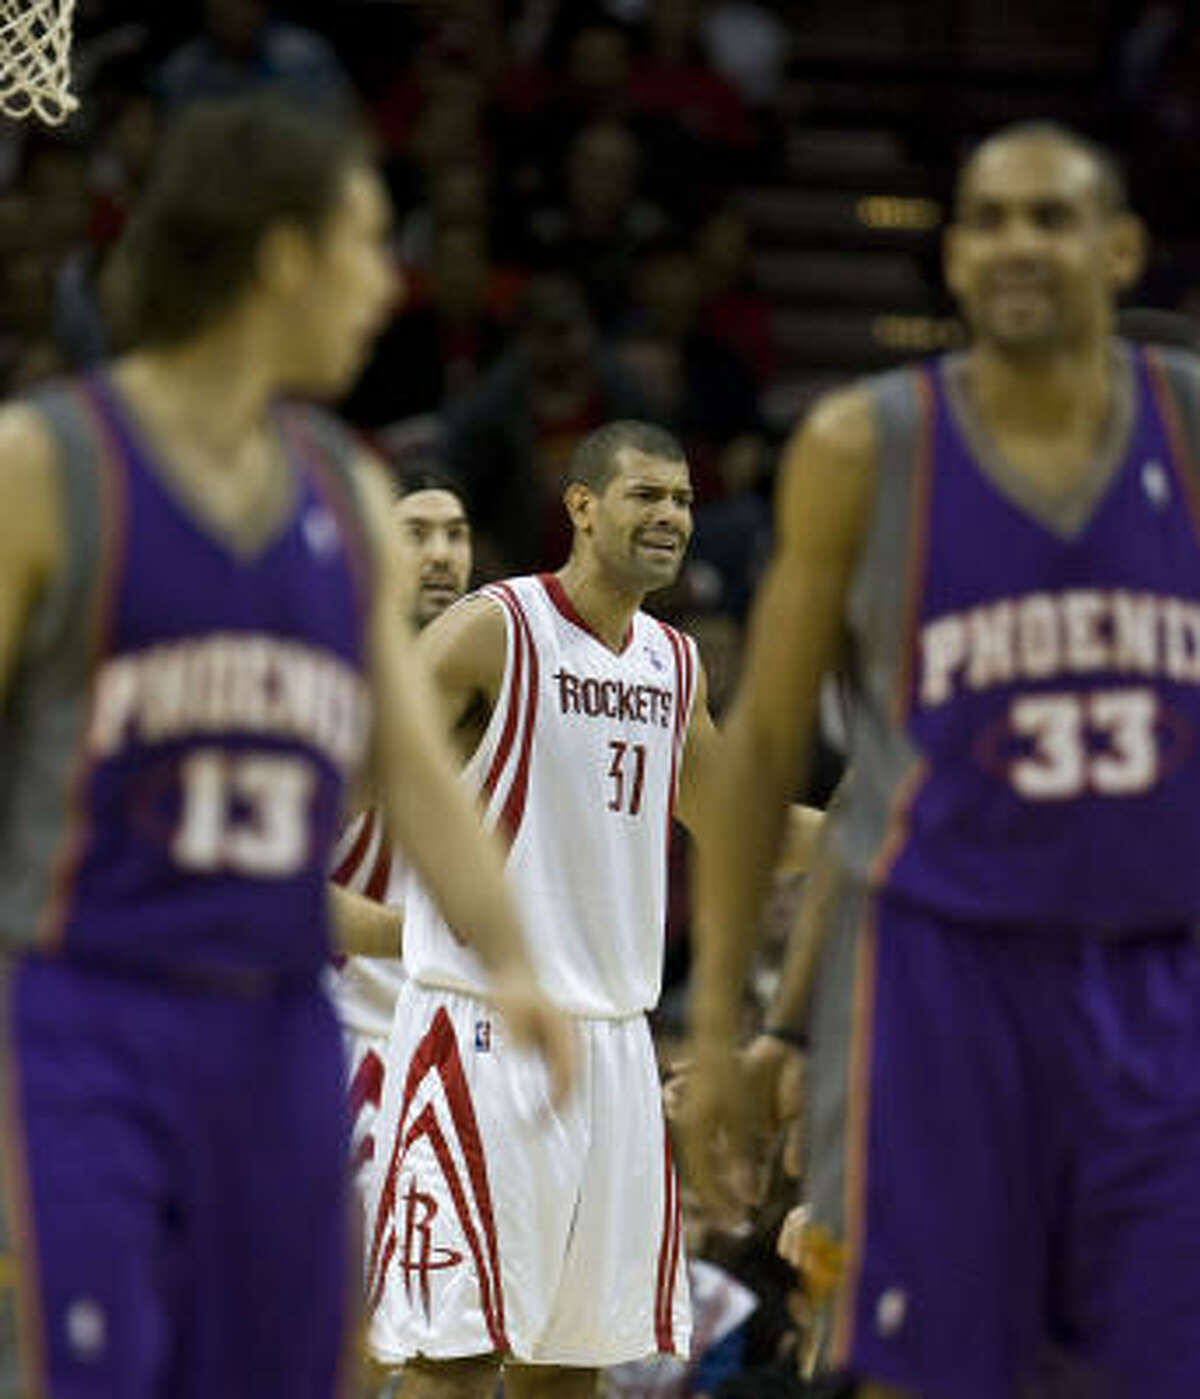 Rockets guard Shane Battier reacts to a call as Suns guards Steve Nash (left) and Grant Hill (right) walk away during the fourth quarter.